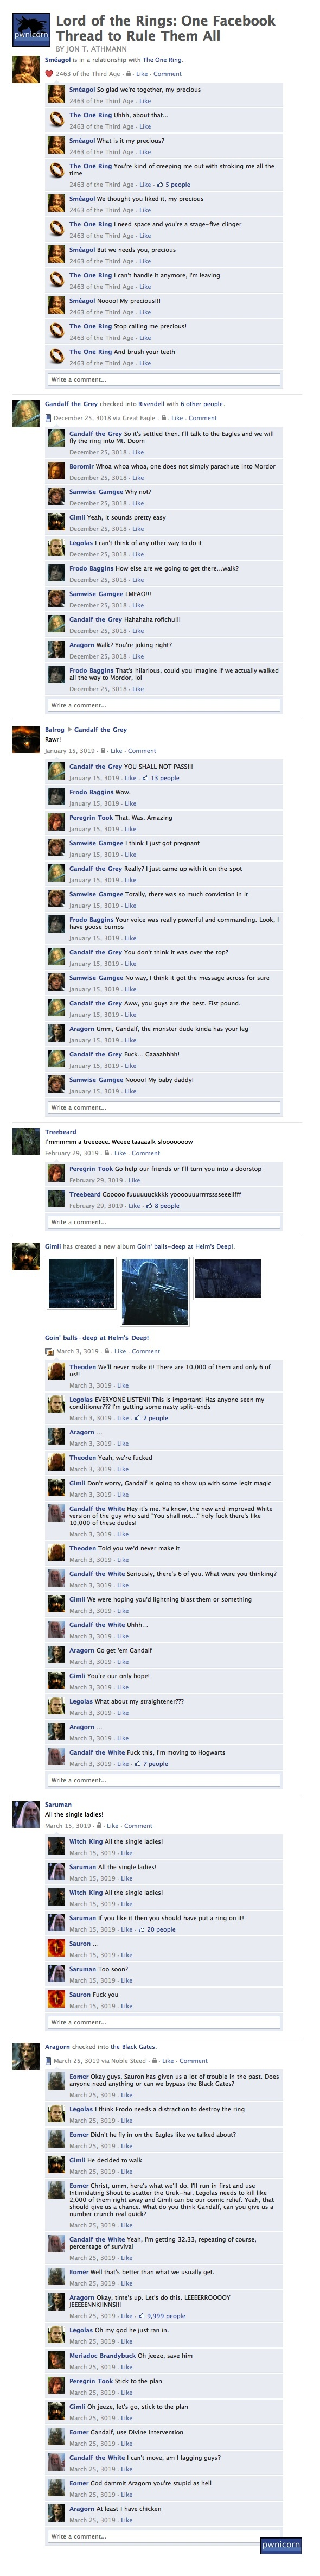 Hilarious Facebook Lord of the Rings thread, from http://www.funnyordie.com/articles/b6d2dd7350/lord-of-the-rings-one-facebook-thread-to-rule-them-all